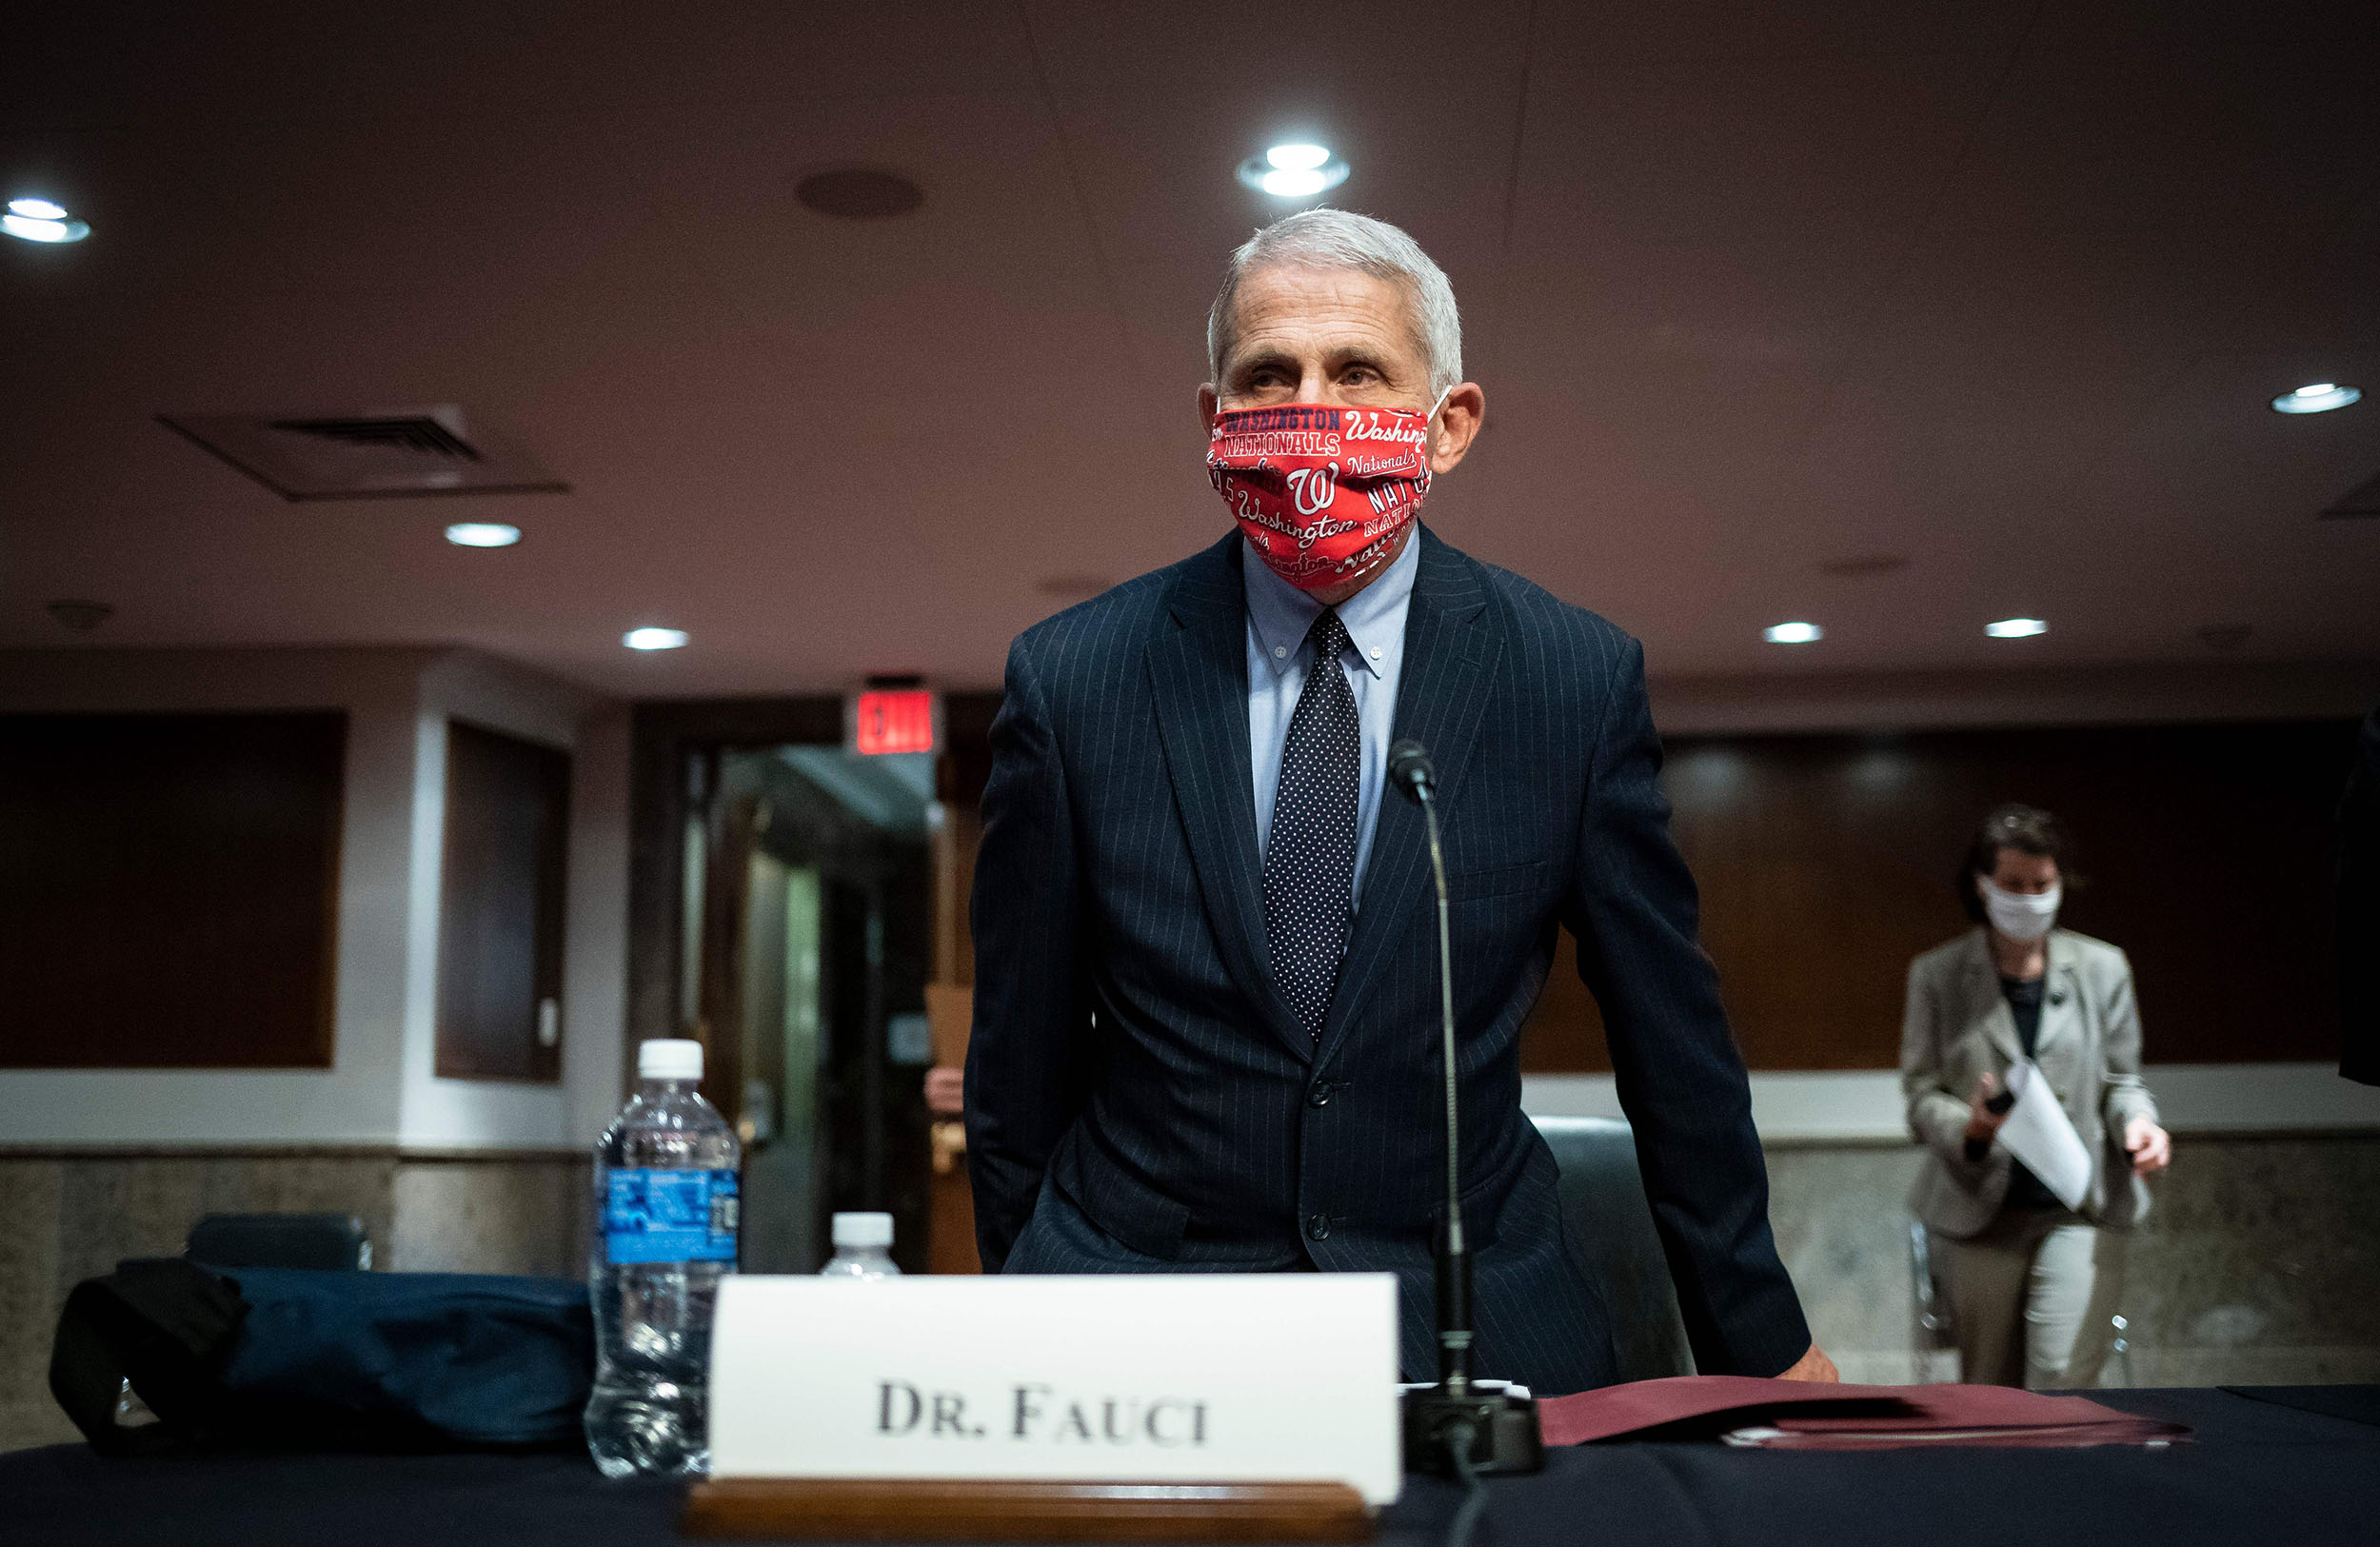 Anthony Fauci, director of the National Institute of Allergy and Infectious Diseases, looks on during a Senate Health, Education, Labor and Pensions Committee hearing on June 30, in Washington, DC.